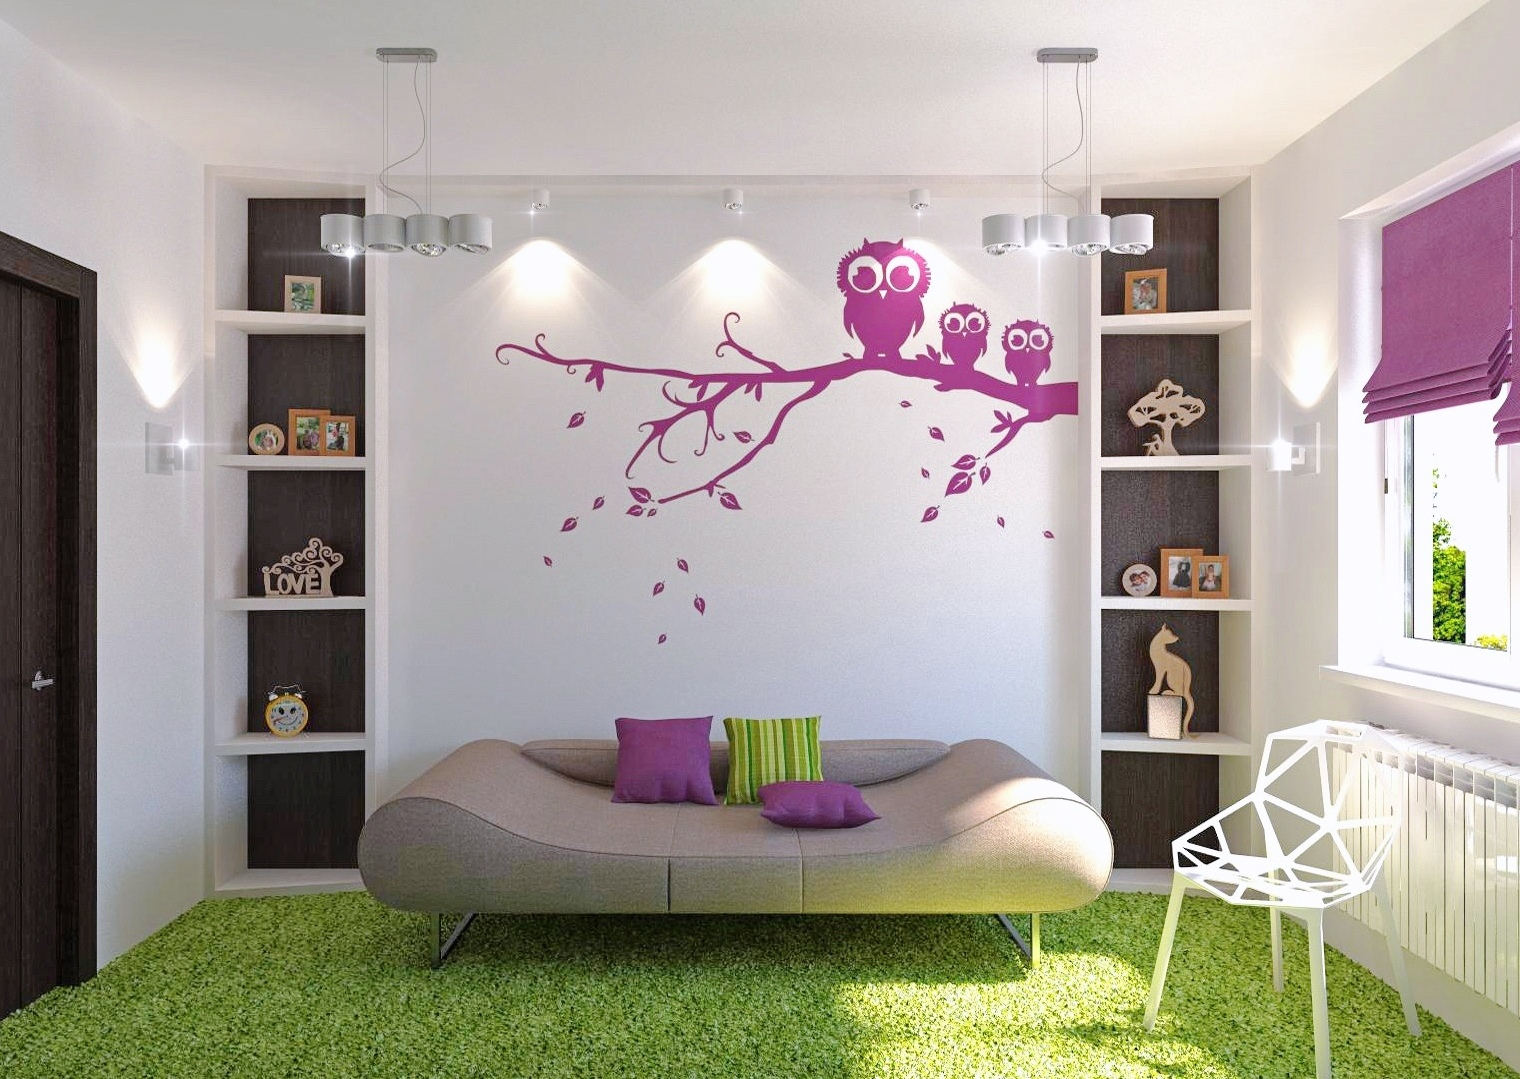 Bedroom ideas for young adults with owl wallpaper theme and colorful furniture